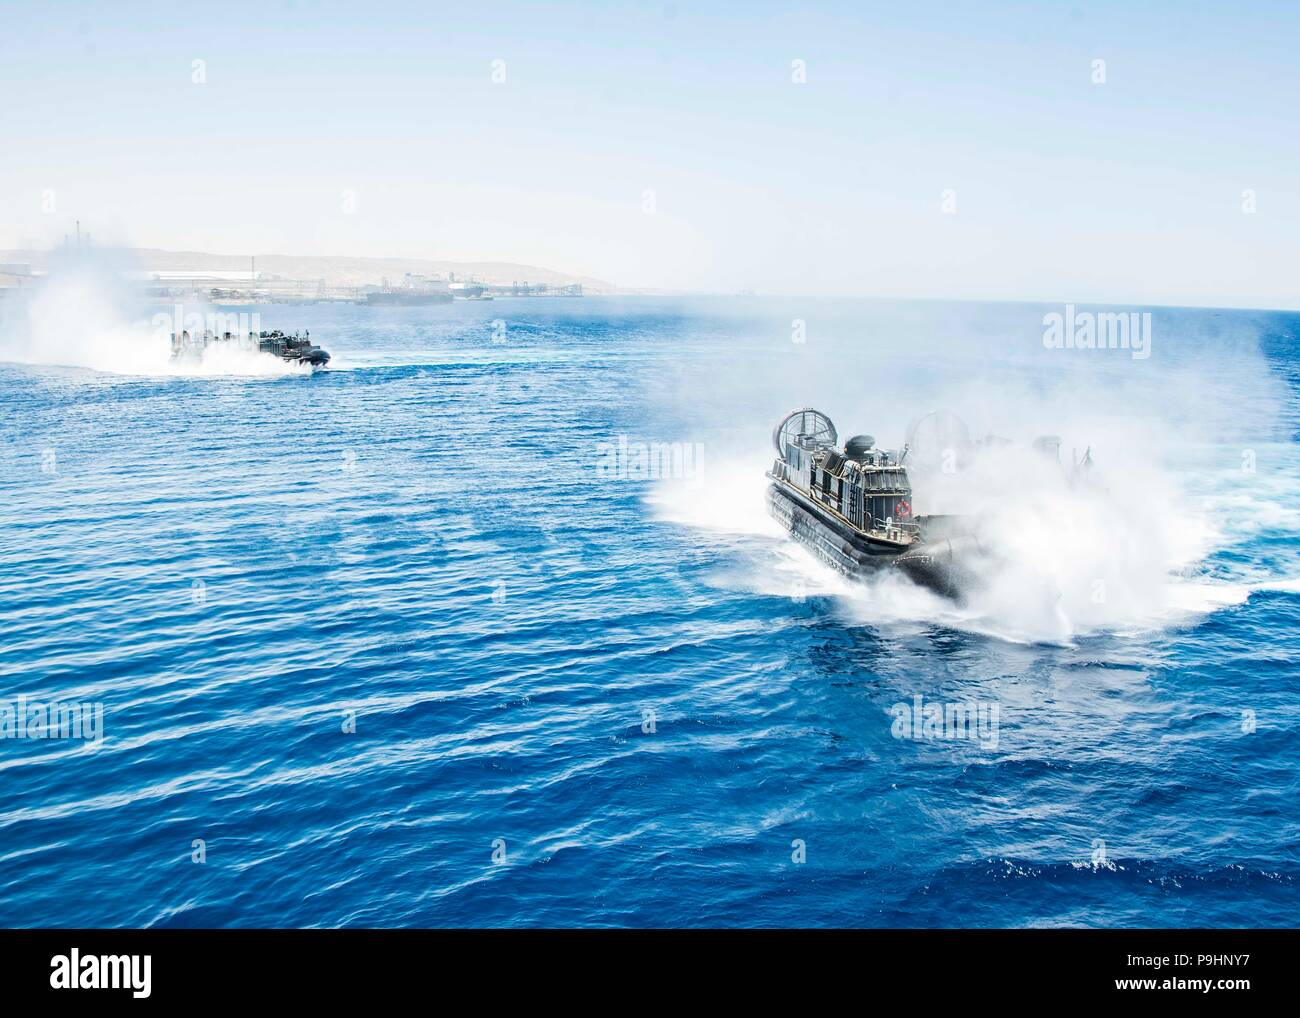 180705-N-ZG607-0187 AQABA, Jordan (July 5, 2018) A landing craft, air cushion, attached to Assault Craft Unit 4, approaches the Wasp-class amphibious assault ship USS Iwo Jima (LHD 7) during amphibious training. Iwo Jima is deployed to the U.S. 5th Fleet area of operations in support of naval operations to ensure maritime stability and security in the central region, connecting the Mediterranean and the Pacific through the western Indian Ocean and three strategic choke points. (U.S. Navy photo by Mass Communication Specialist 3rd Class Dominick A. Cremeans/Released) Stock Photo